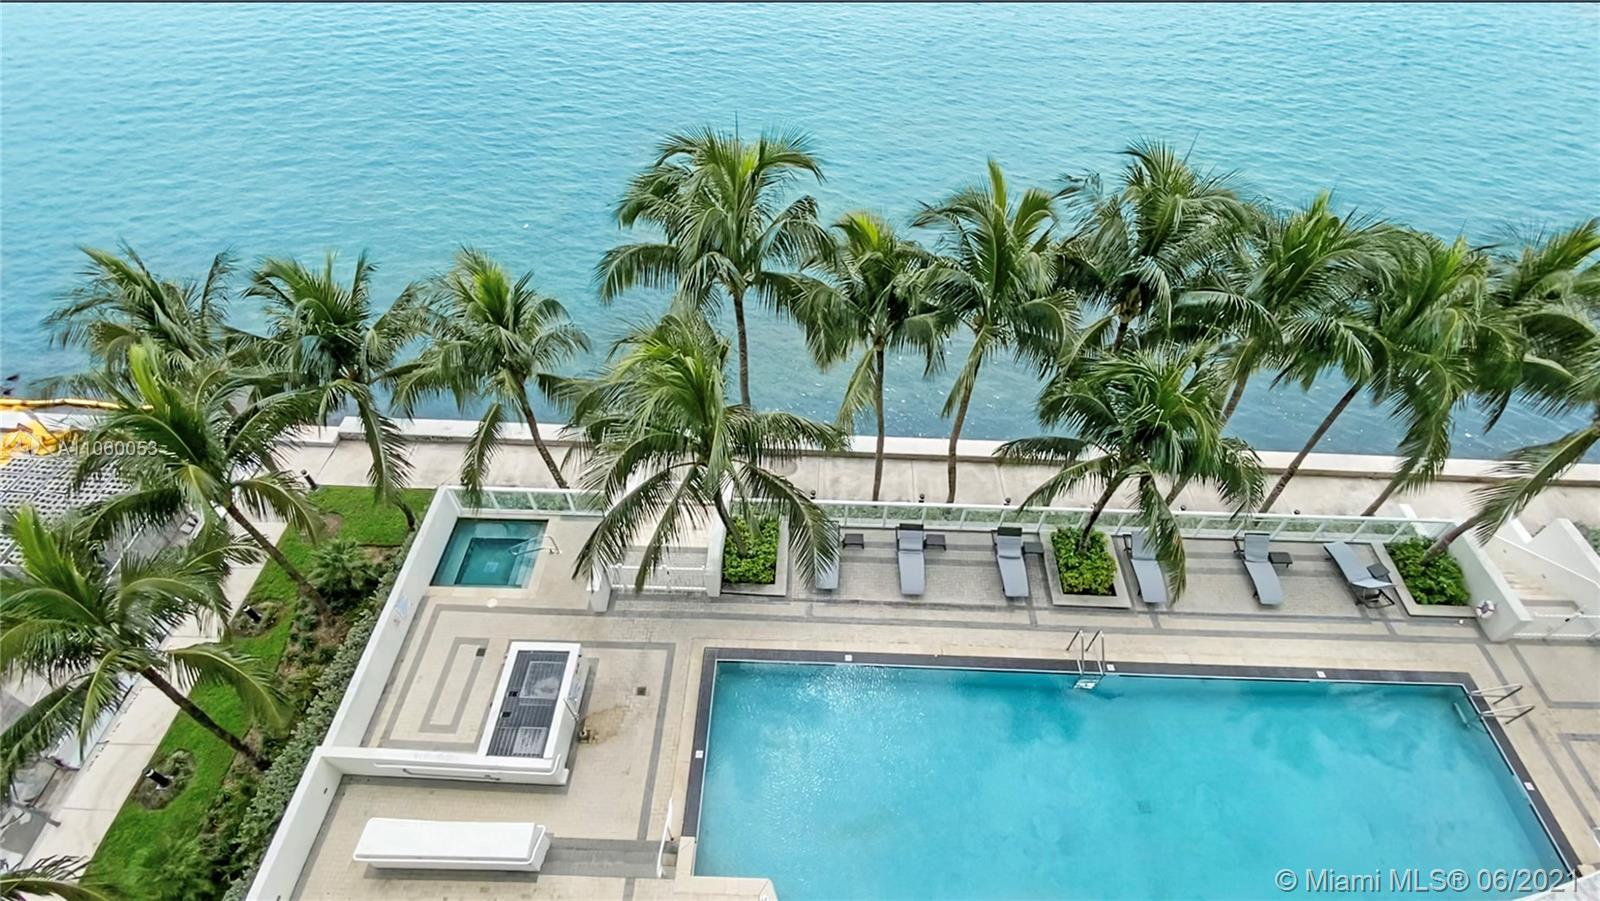 Onyx on the Bay - Condos for sale